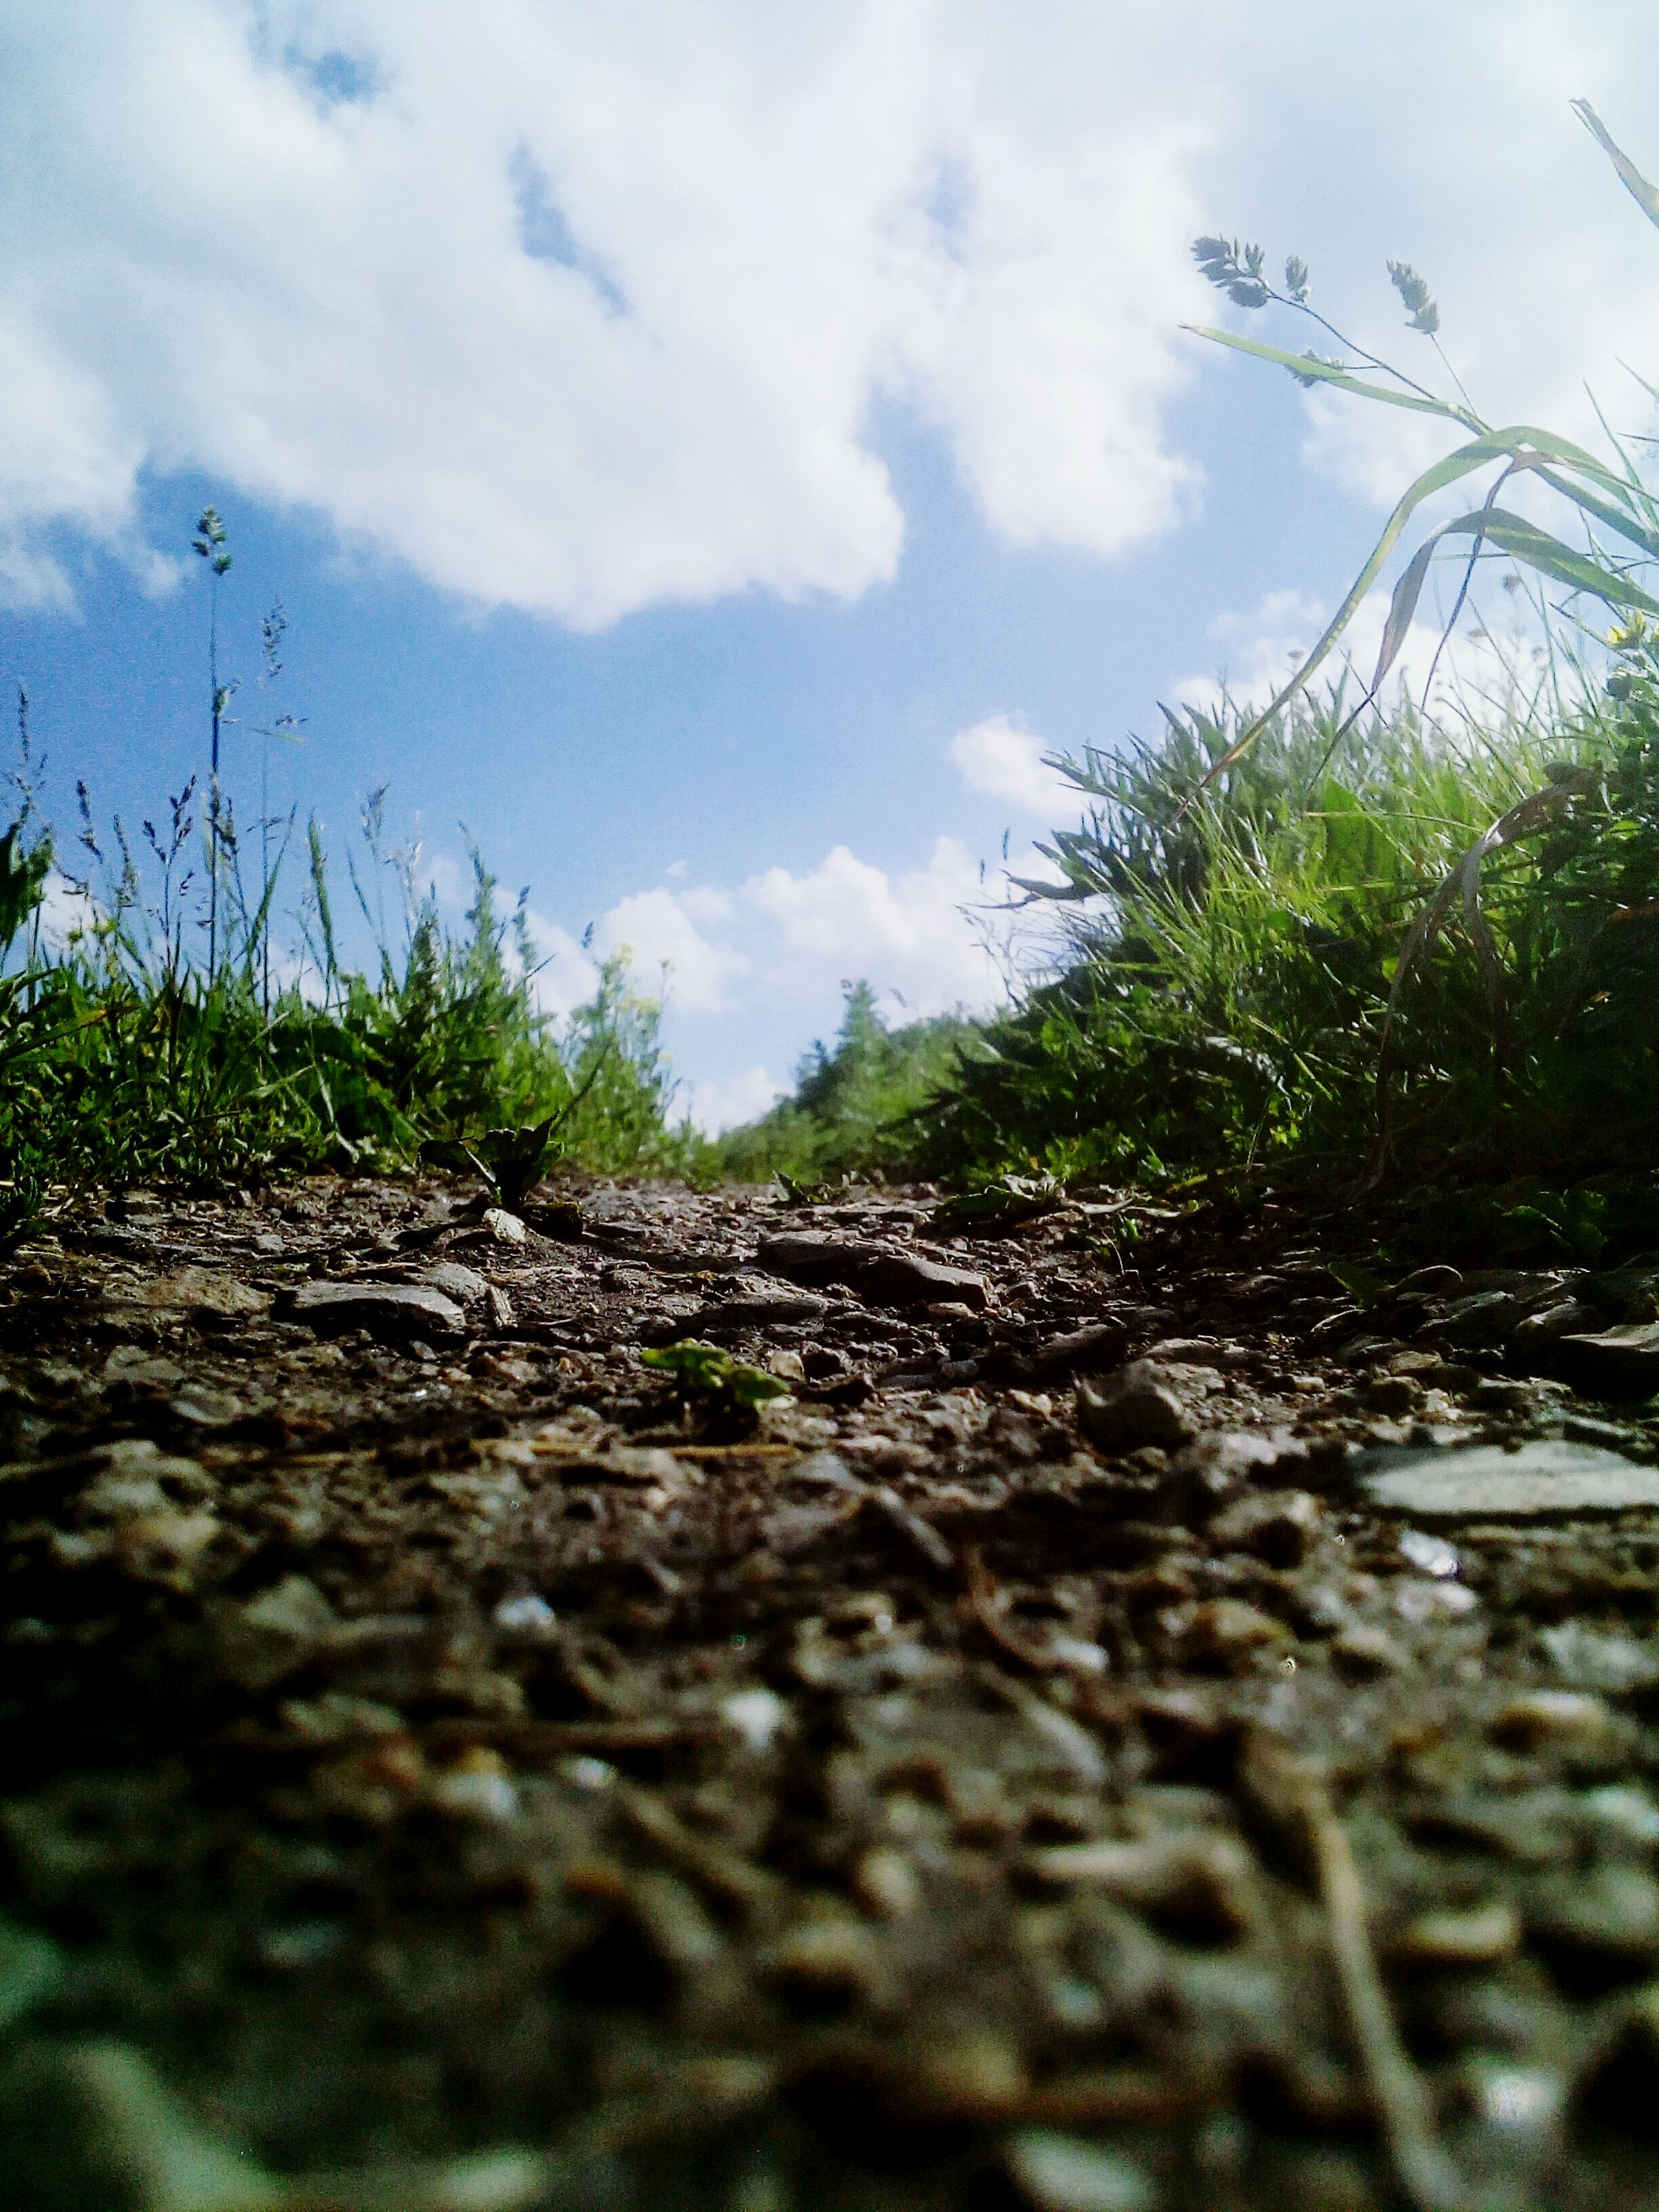 surface level, growth, nature, day, no people, plant, outdoors, cloud - sky, sky, beauty in nature, close-up, grass